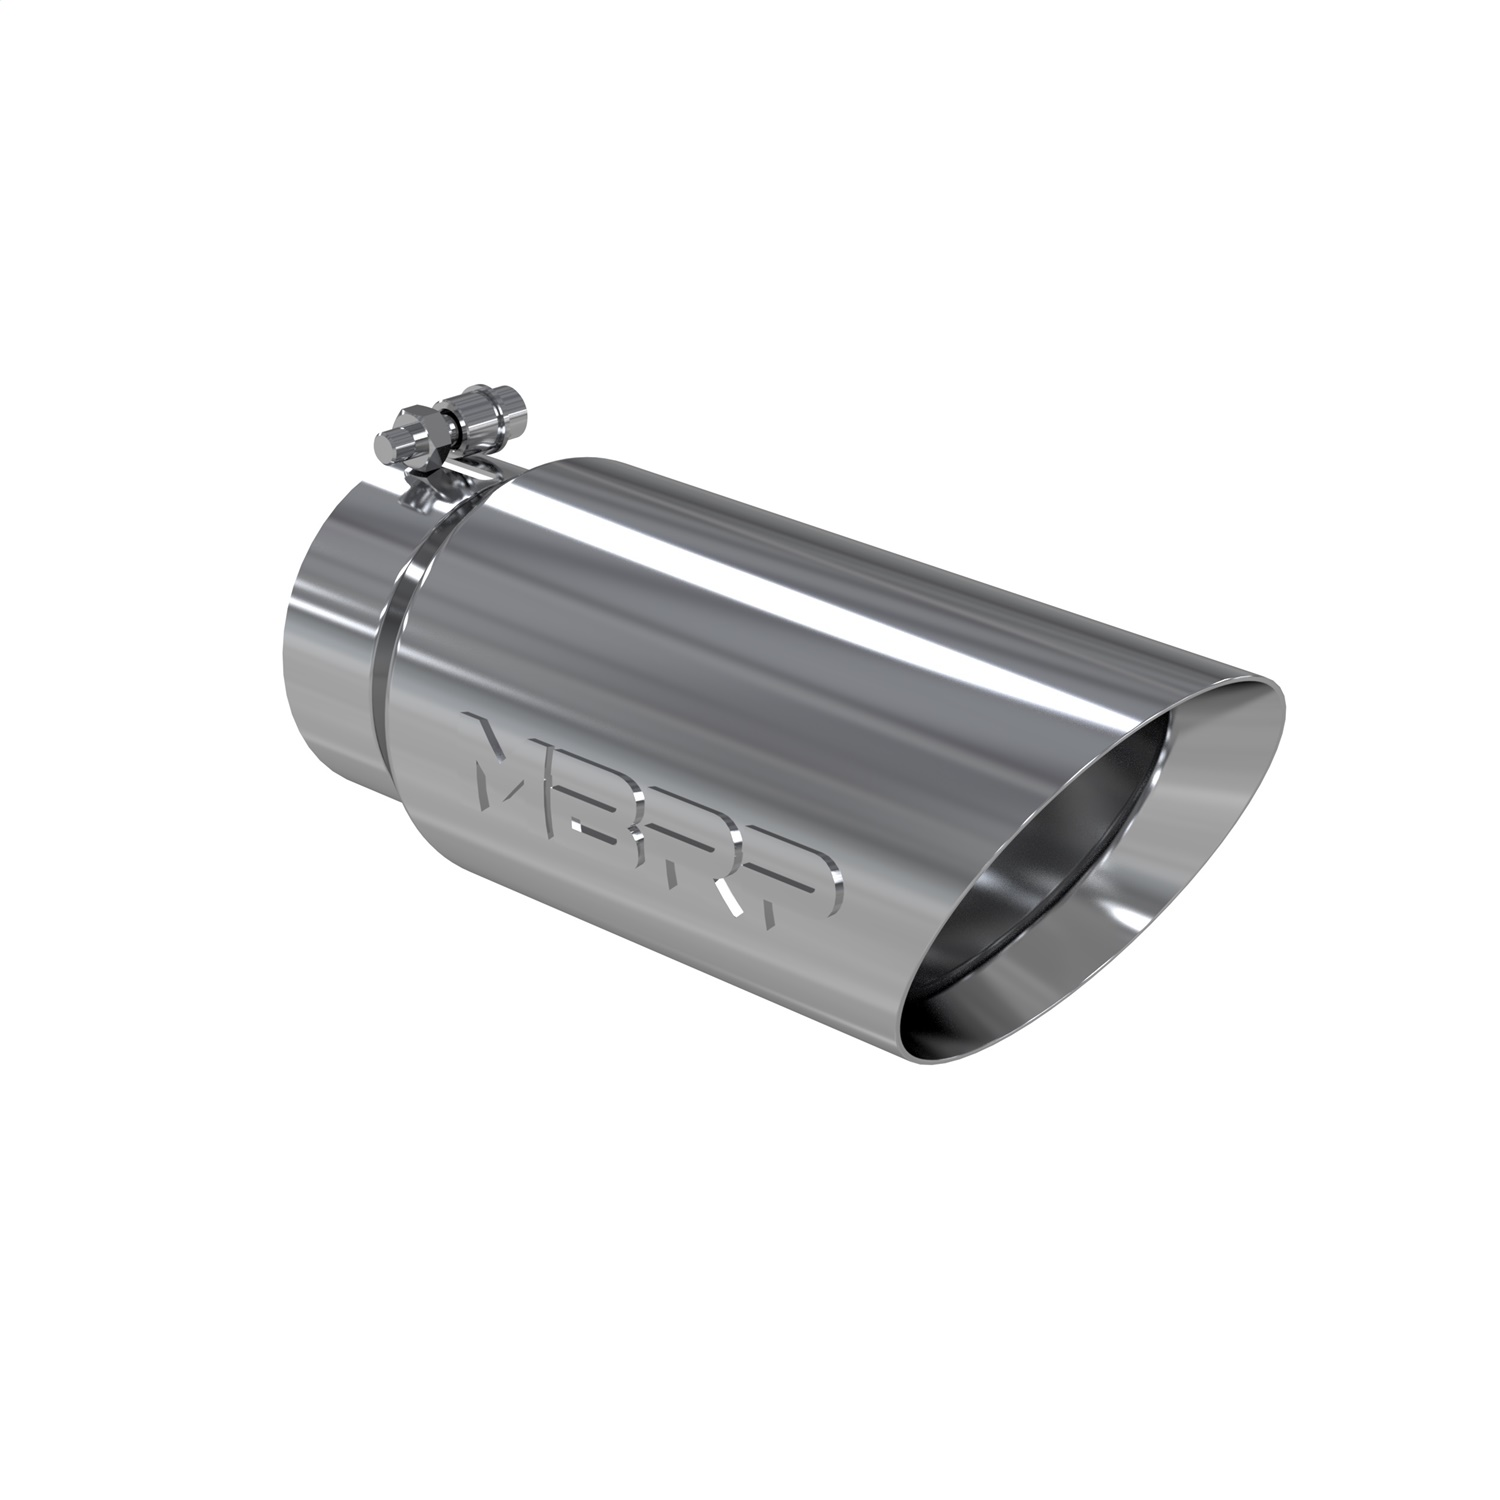 MBRP Exhaust Exhaust Tail Pipe Tip (T5053)